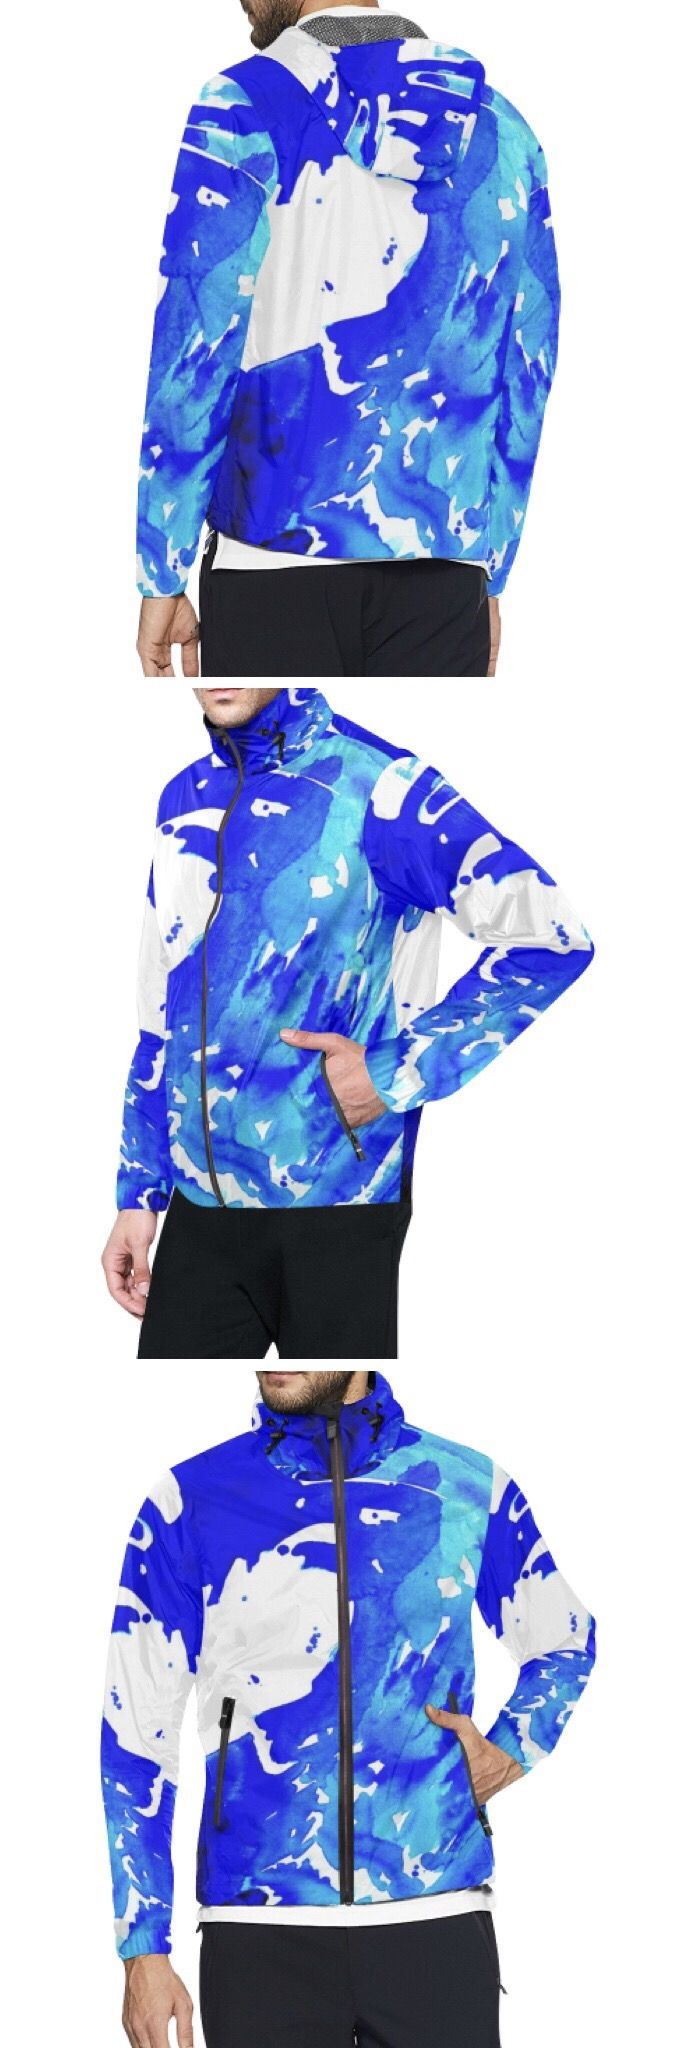 Caribbean colorful Blue and White waterfall water wave All Over Print Windbreaker for Men (Model H23 ) Fashion Designs like this jacket by @anoellejay Alicia Jones and @artsadd   Brooklyn artist featuring Environmental Beach Ocean Caribbean African designs / Go running in a design that has meaning even in the rainy cloudy weather / Also buy this artwork on other home products and accessories http://m.artsadd.com/store/anoellejay?sort=newest?rfsn=714731